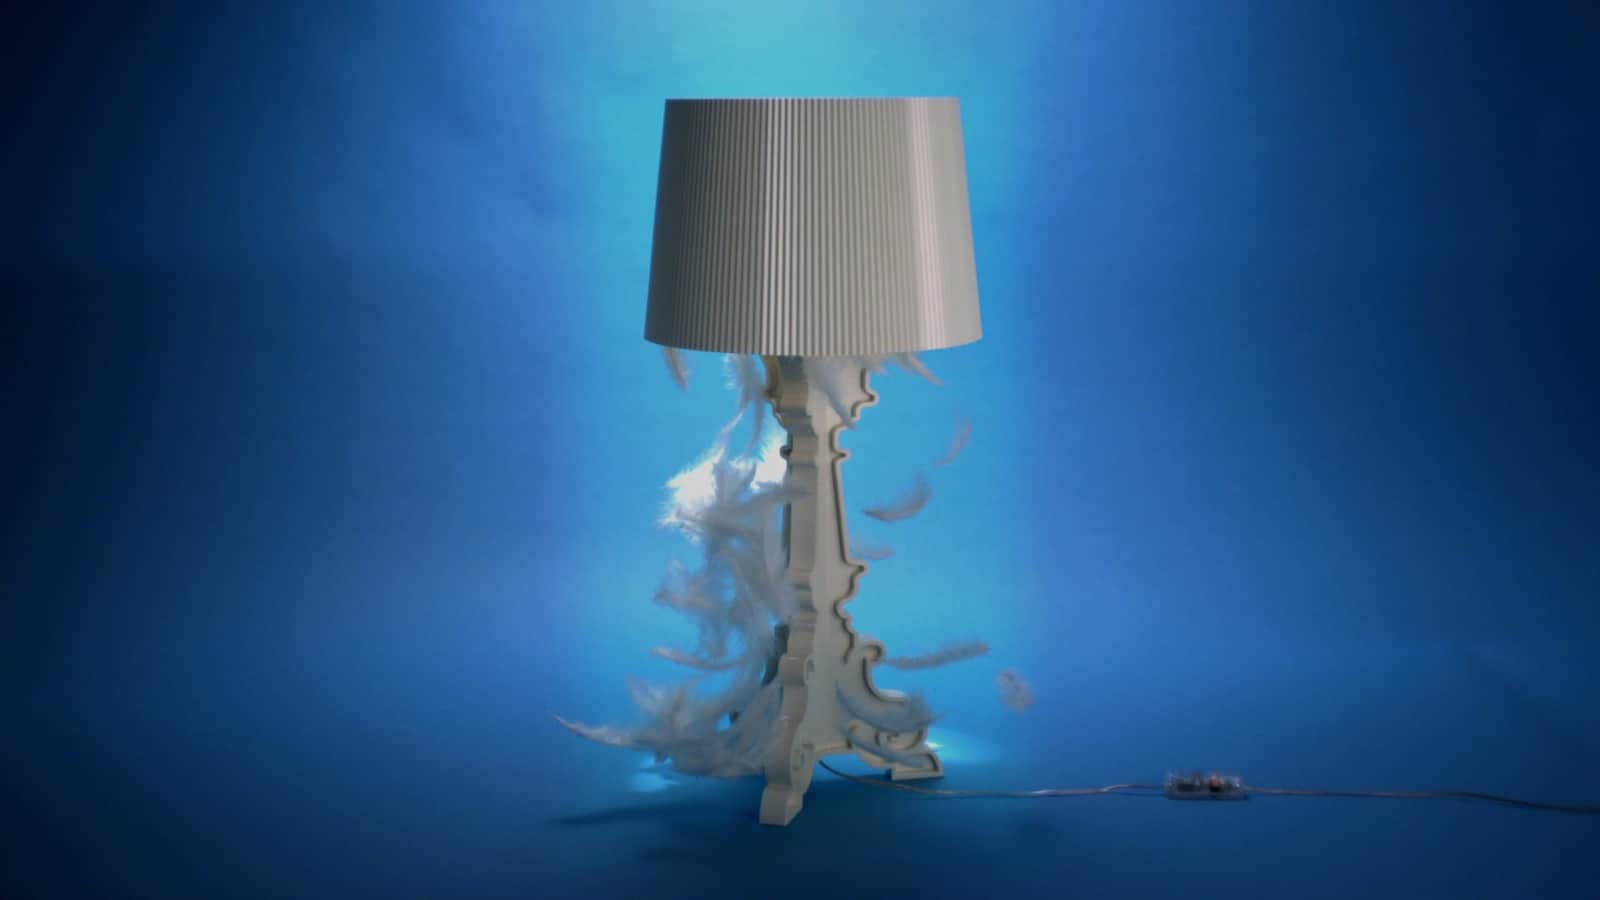 Lampe Kartell Take Interesting Cool Perfect La Lampe Bourgie Par Kartell With